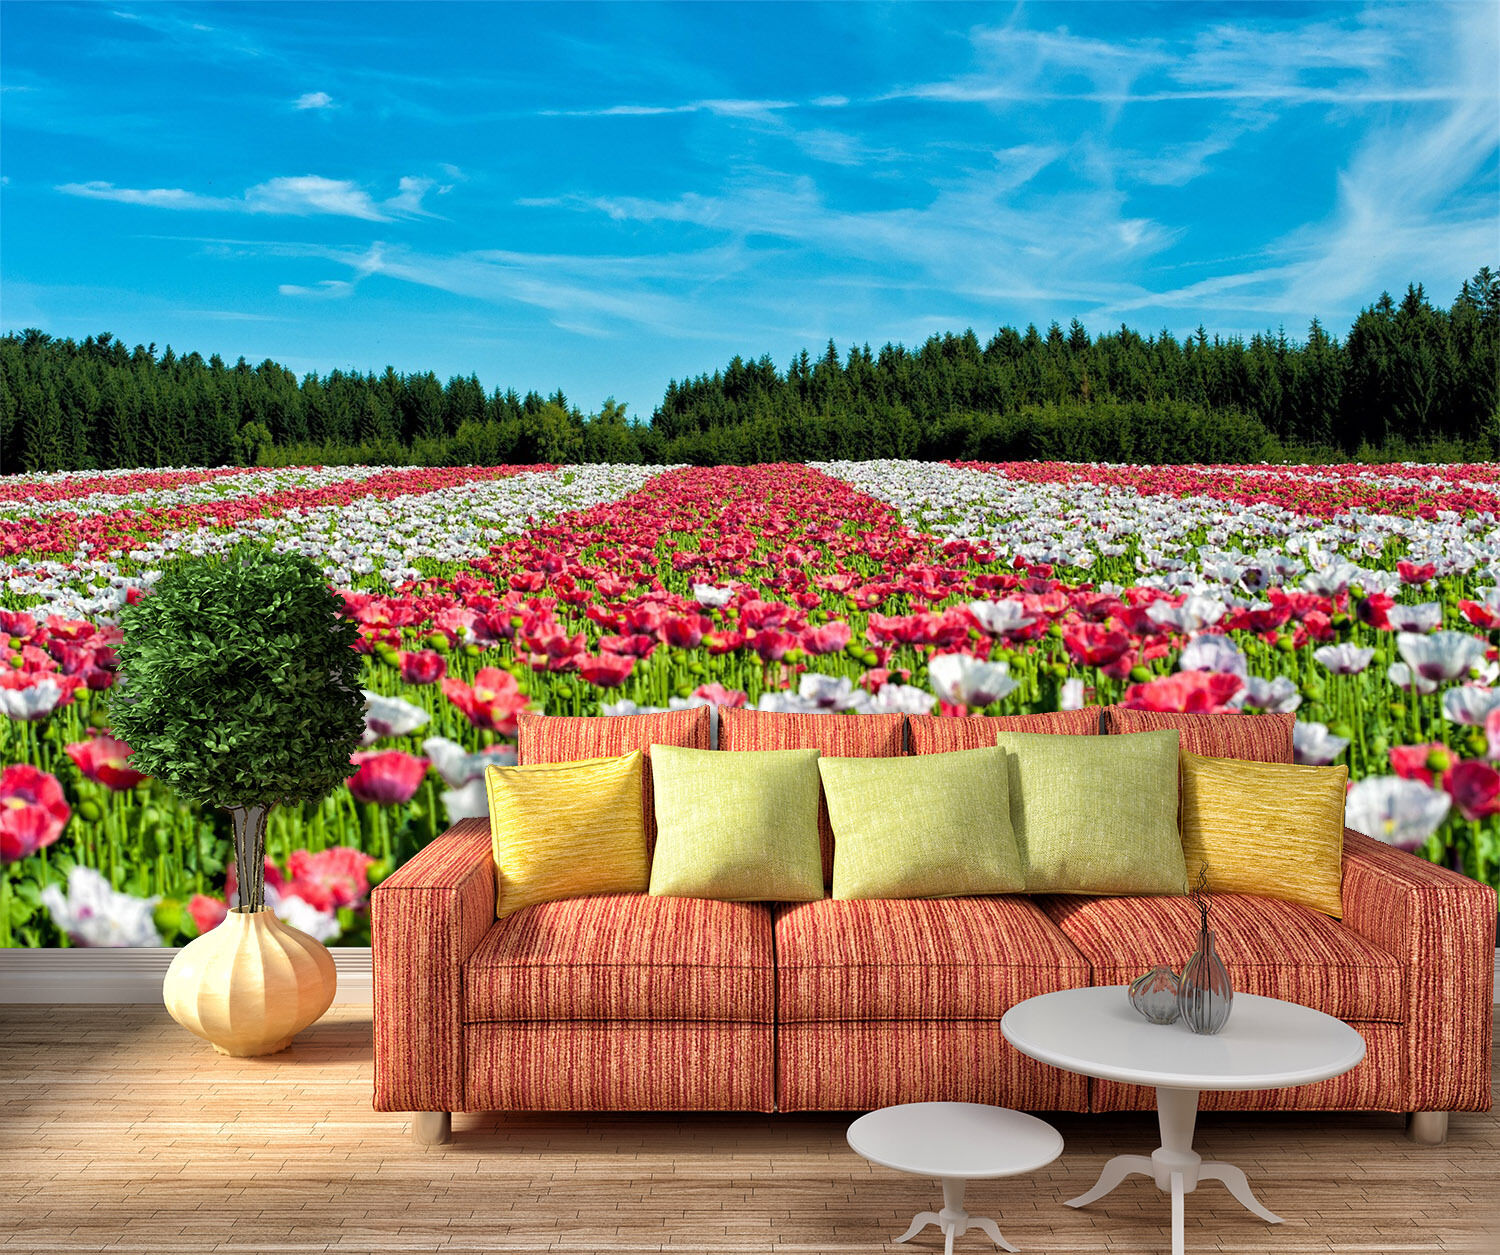 3D Flowers Field bluee Sky 80 Wallpaper Decal Dercor Home Kids Nursery Mural Home